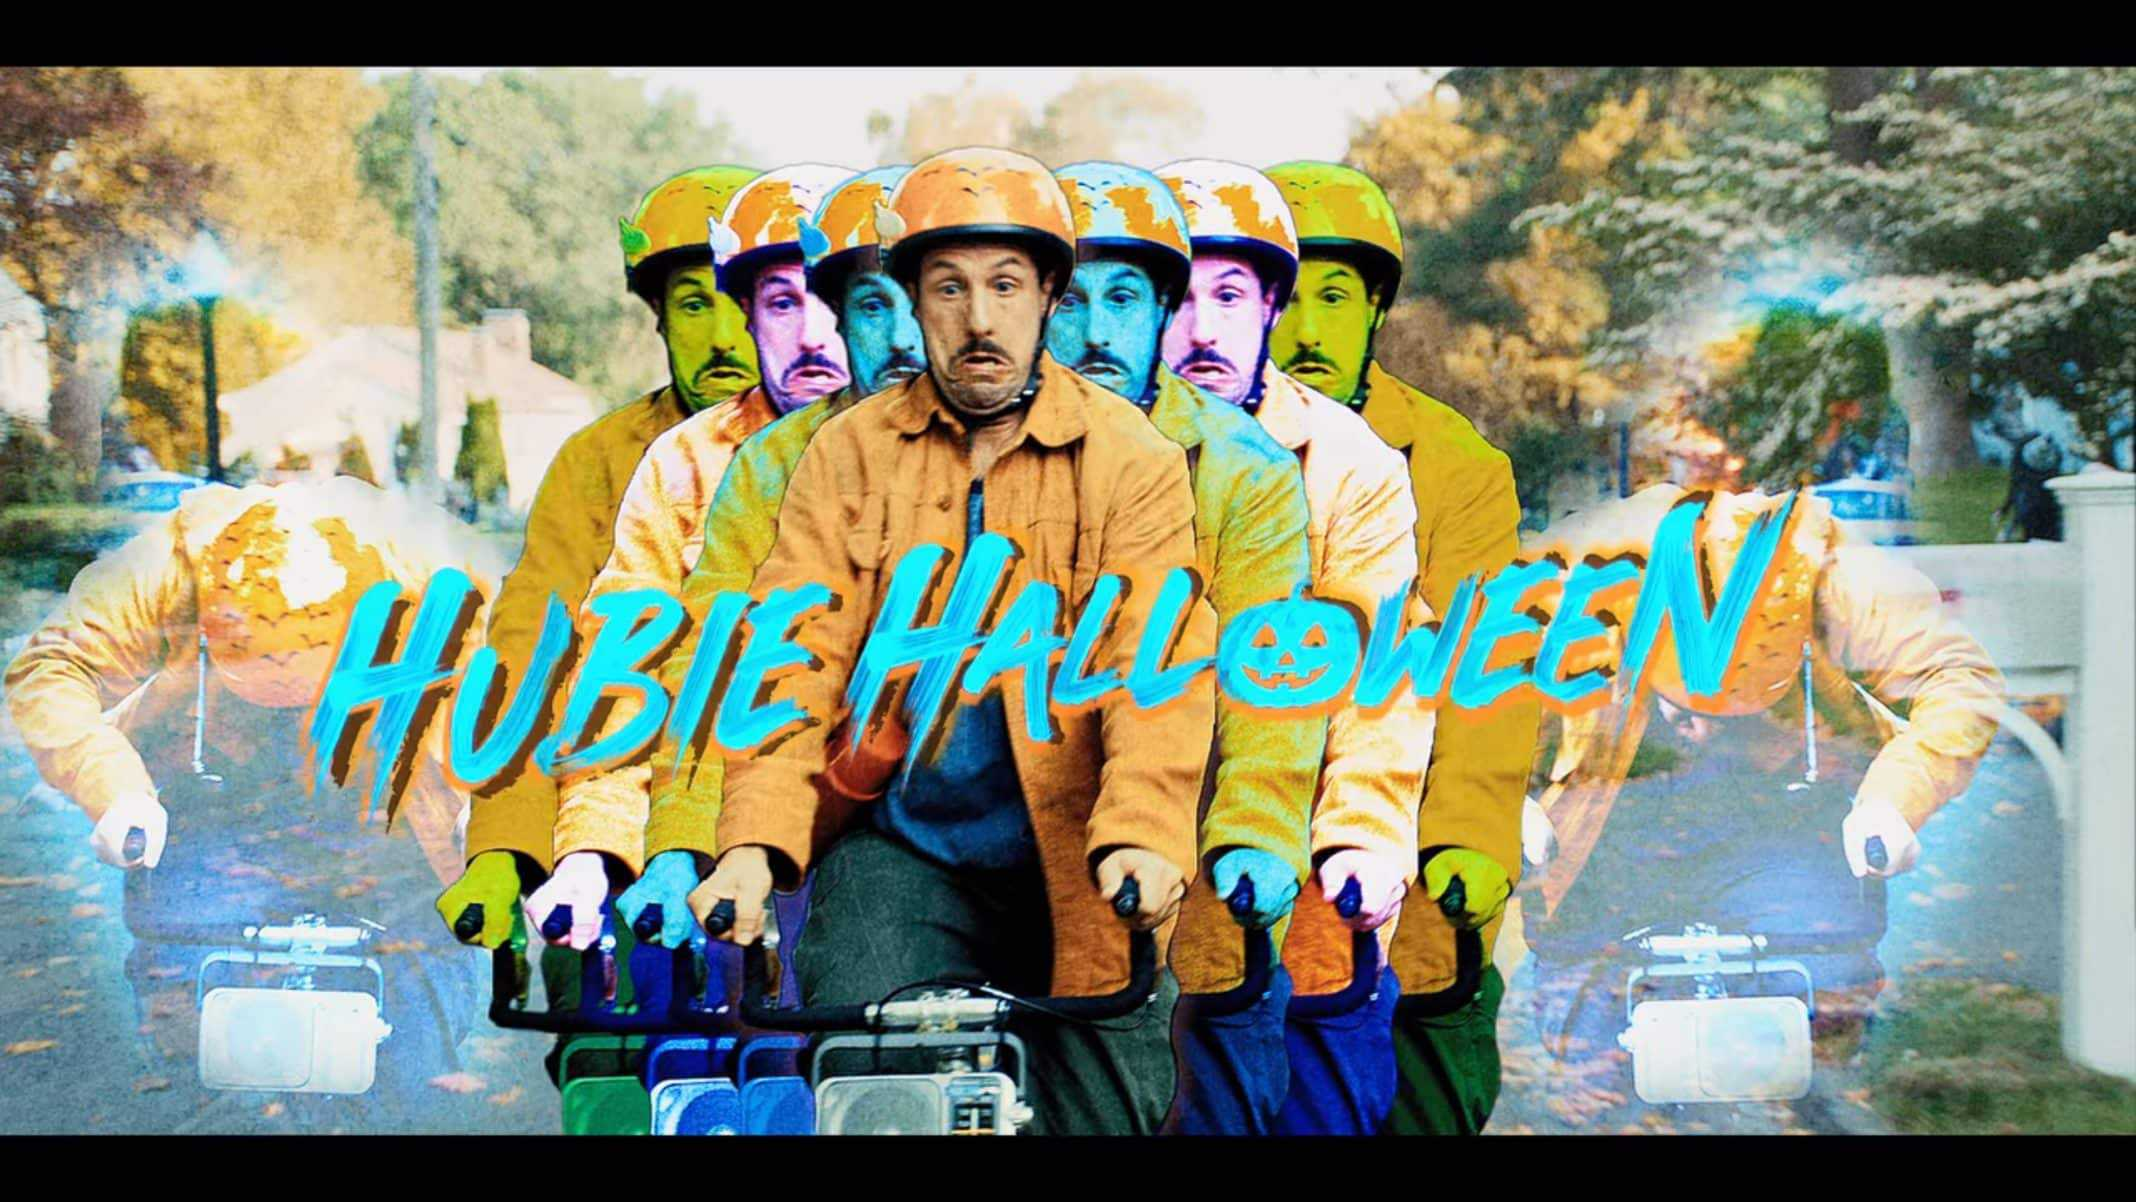 Title Card - Hubie Halloween (2020)